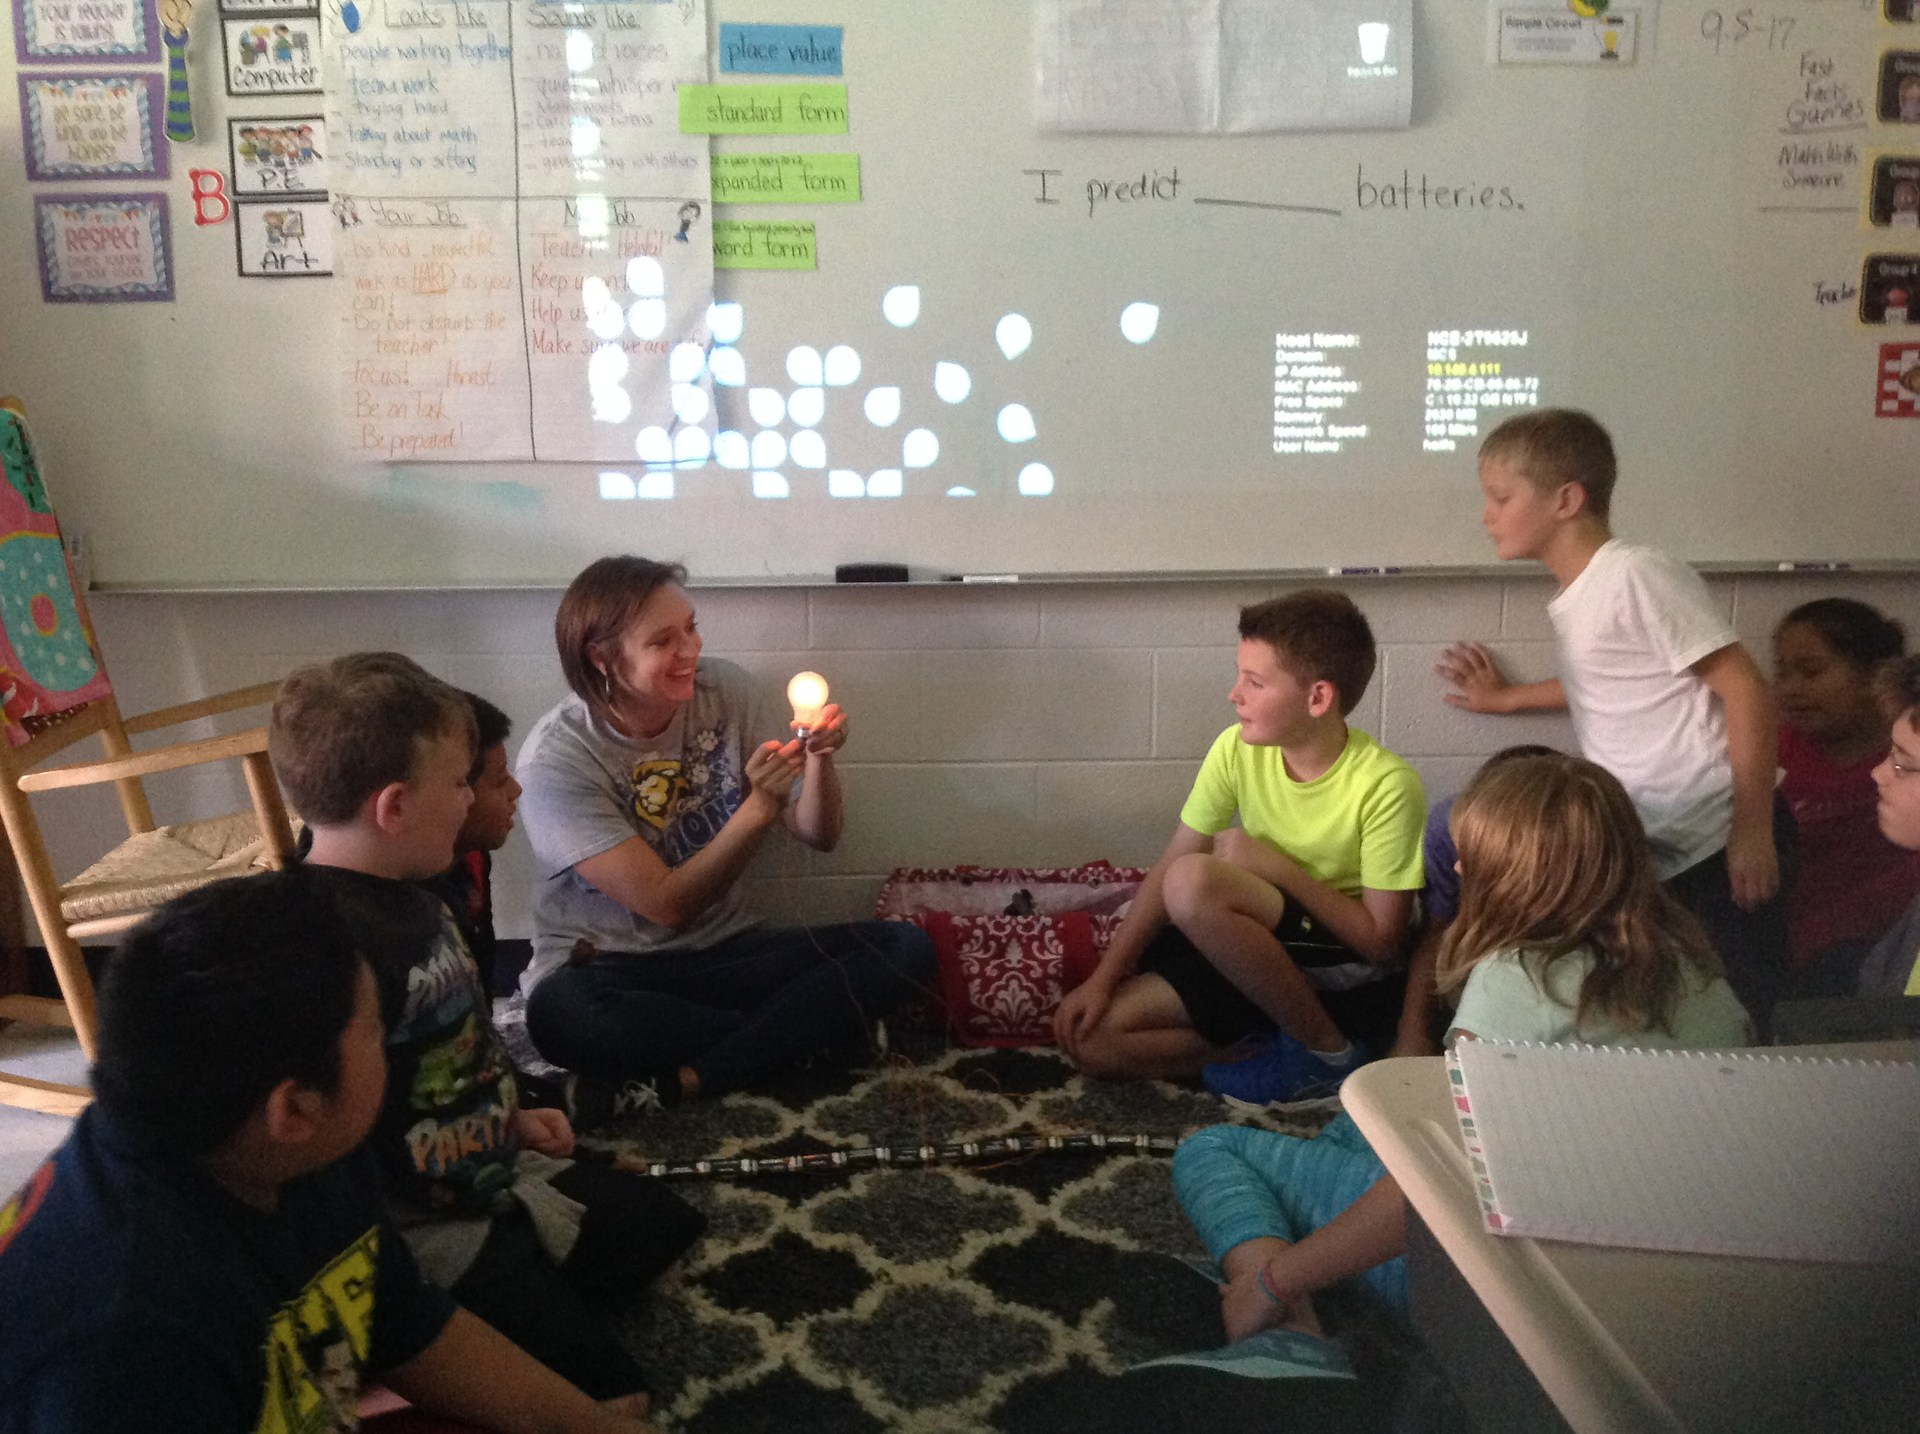 How many batteries will it take to light a regular size light bulb?